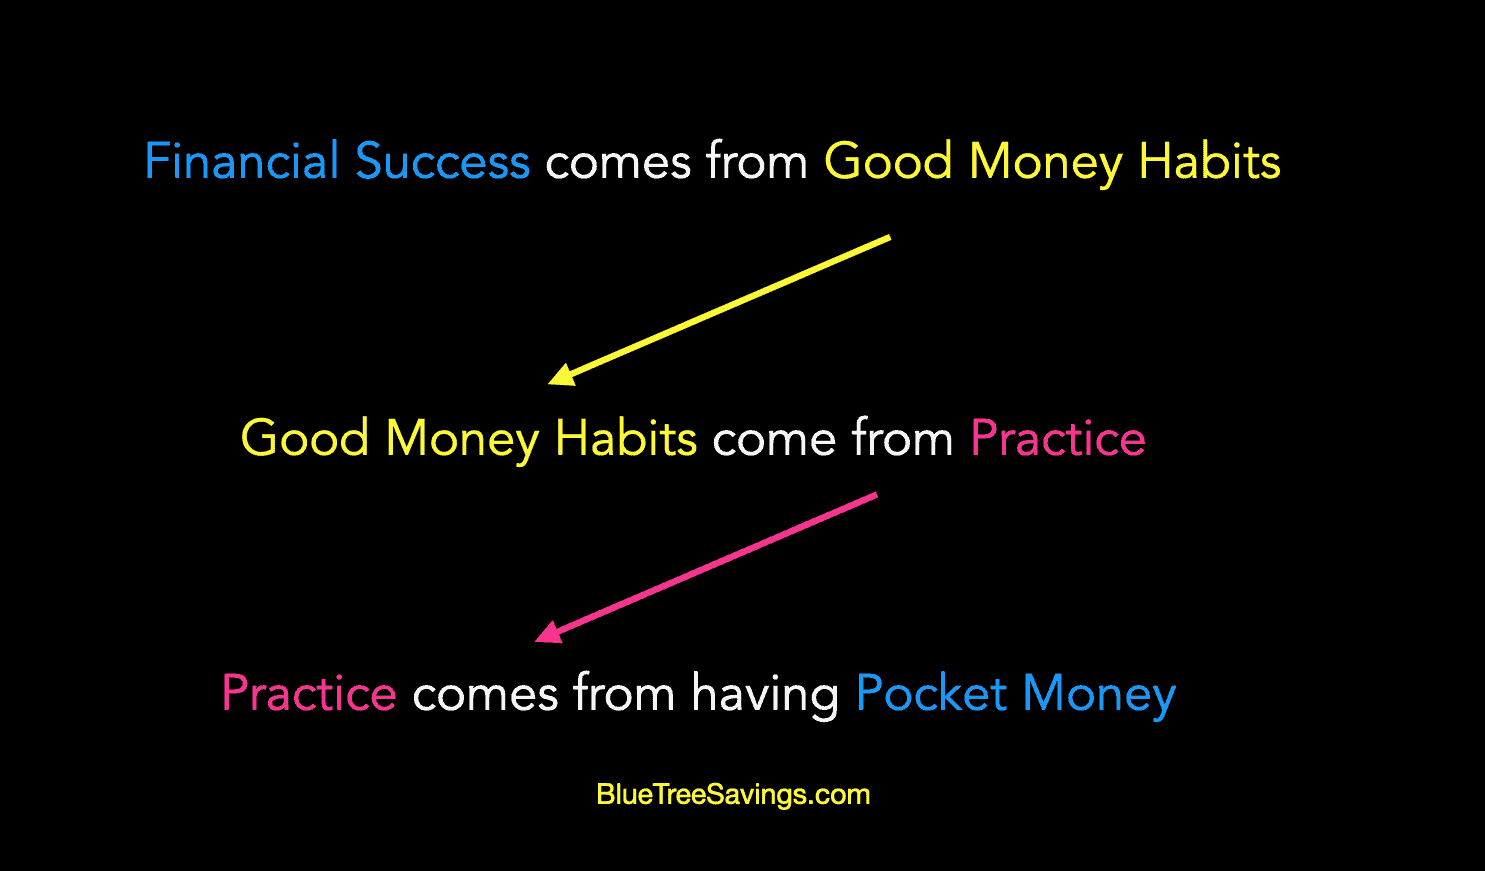 Pocket money is the most underrated financial education tool there is